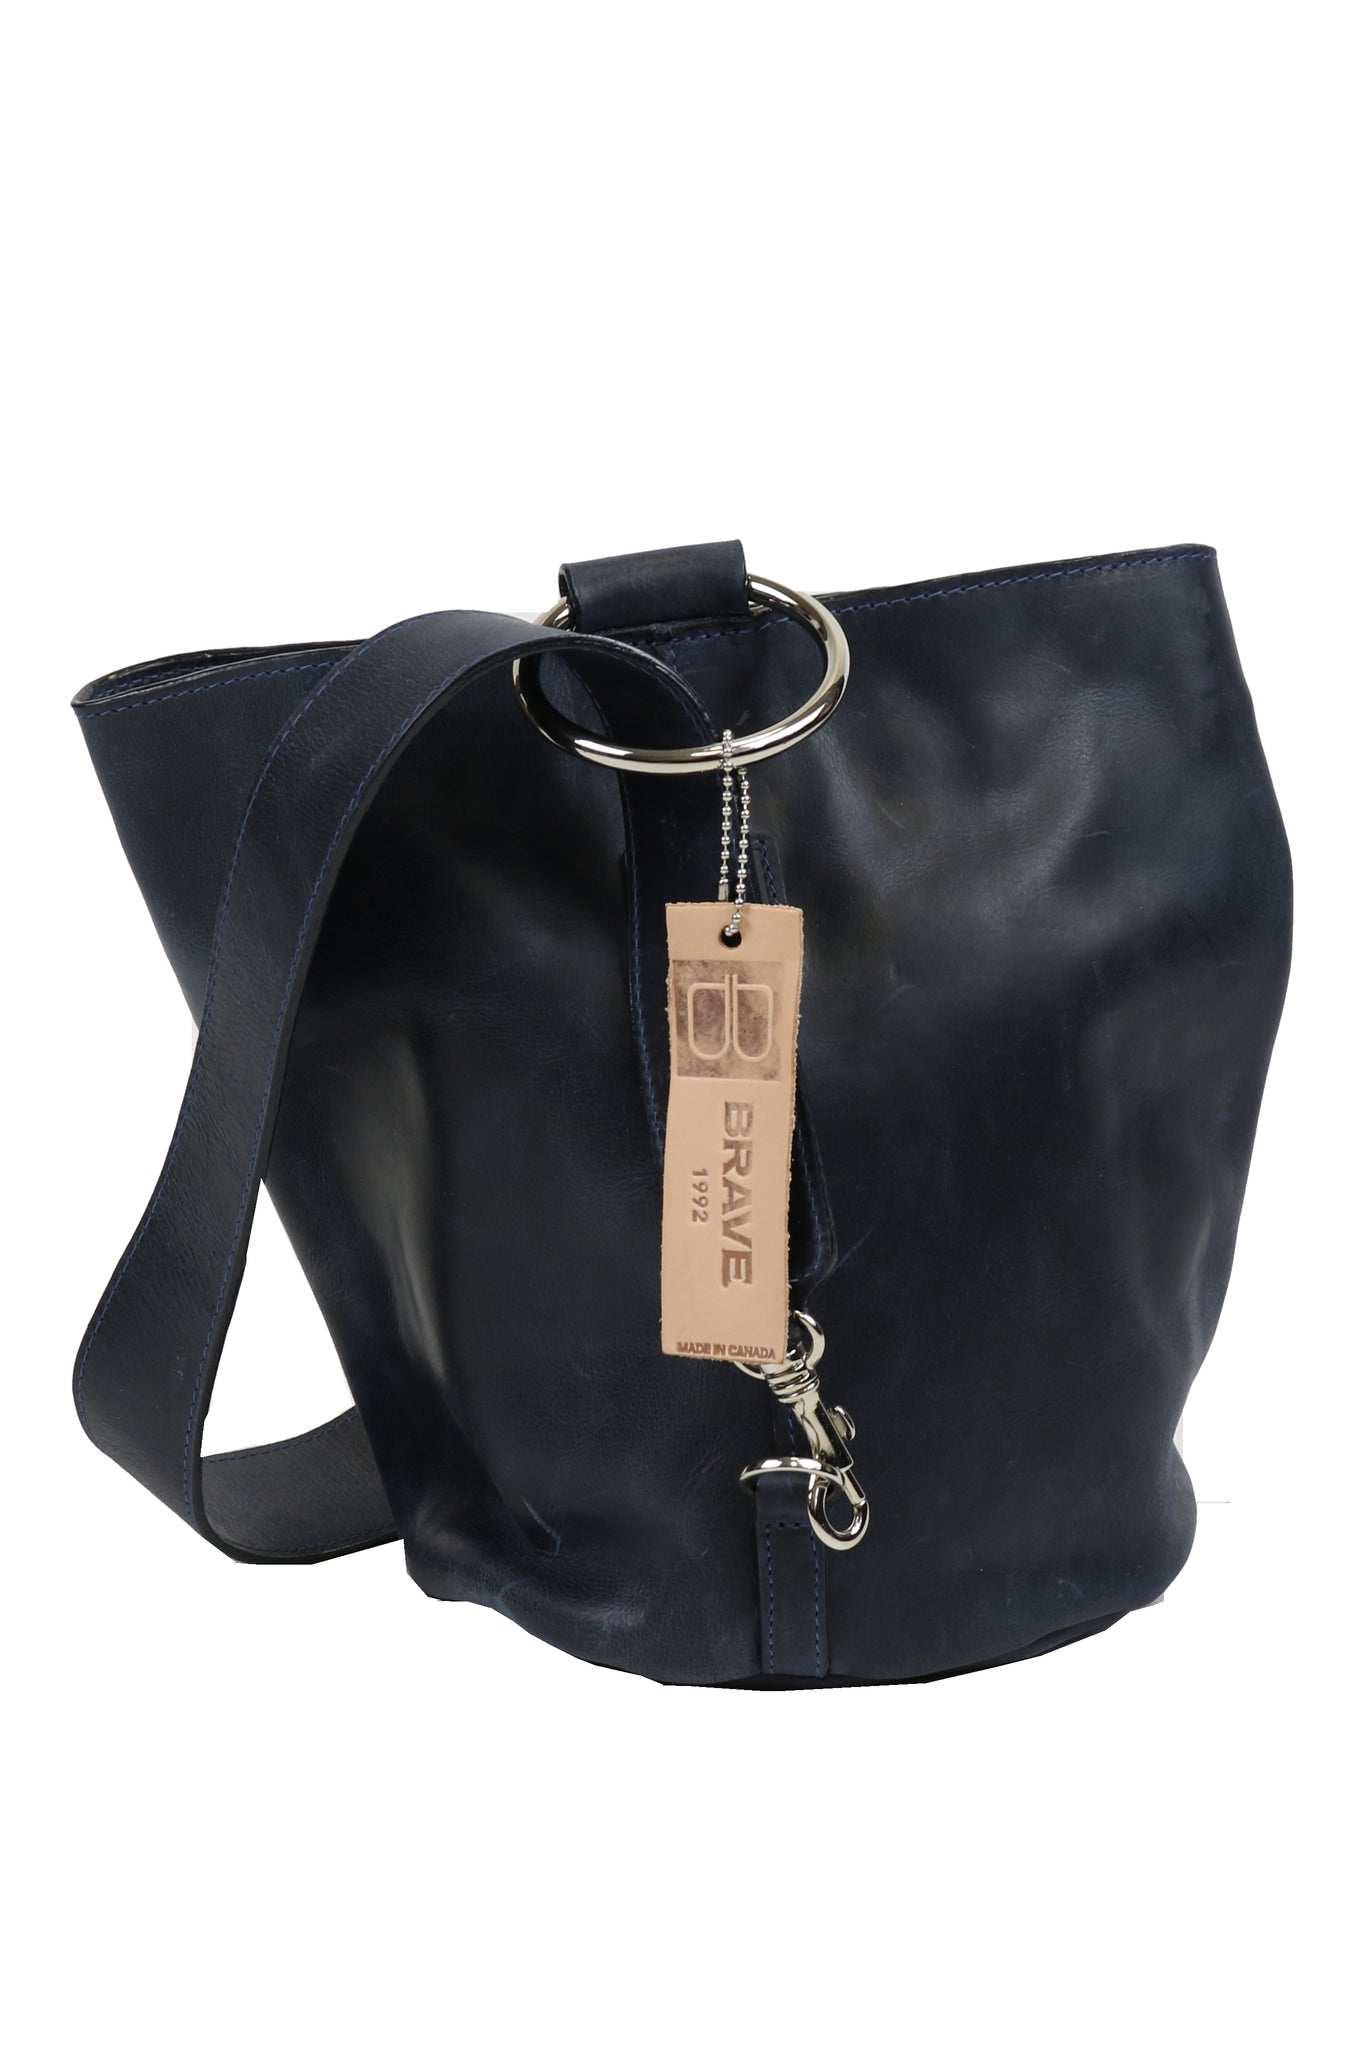 BRAVE LEATHER HANDBAG